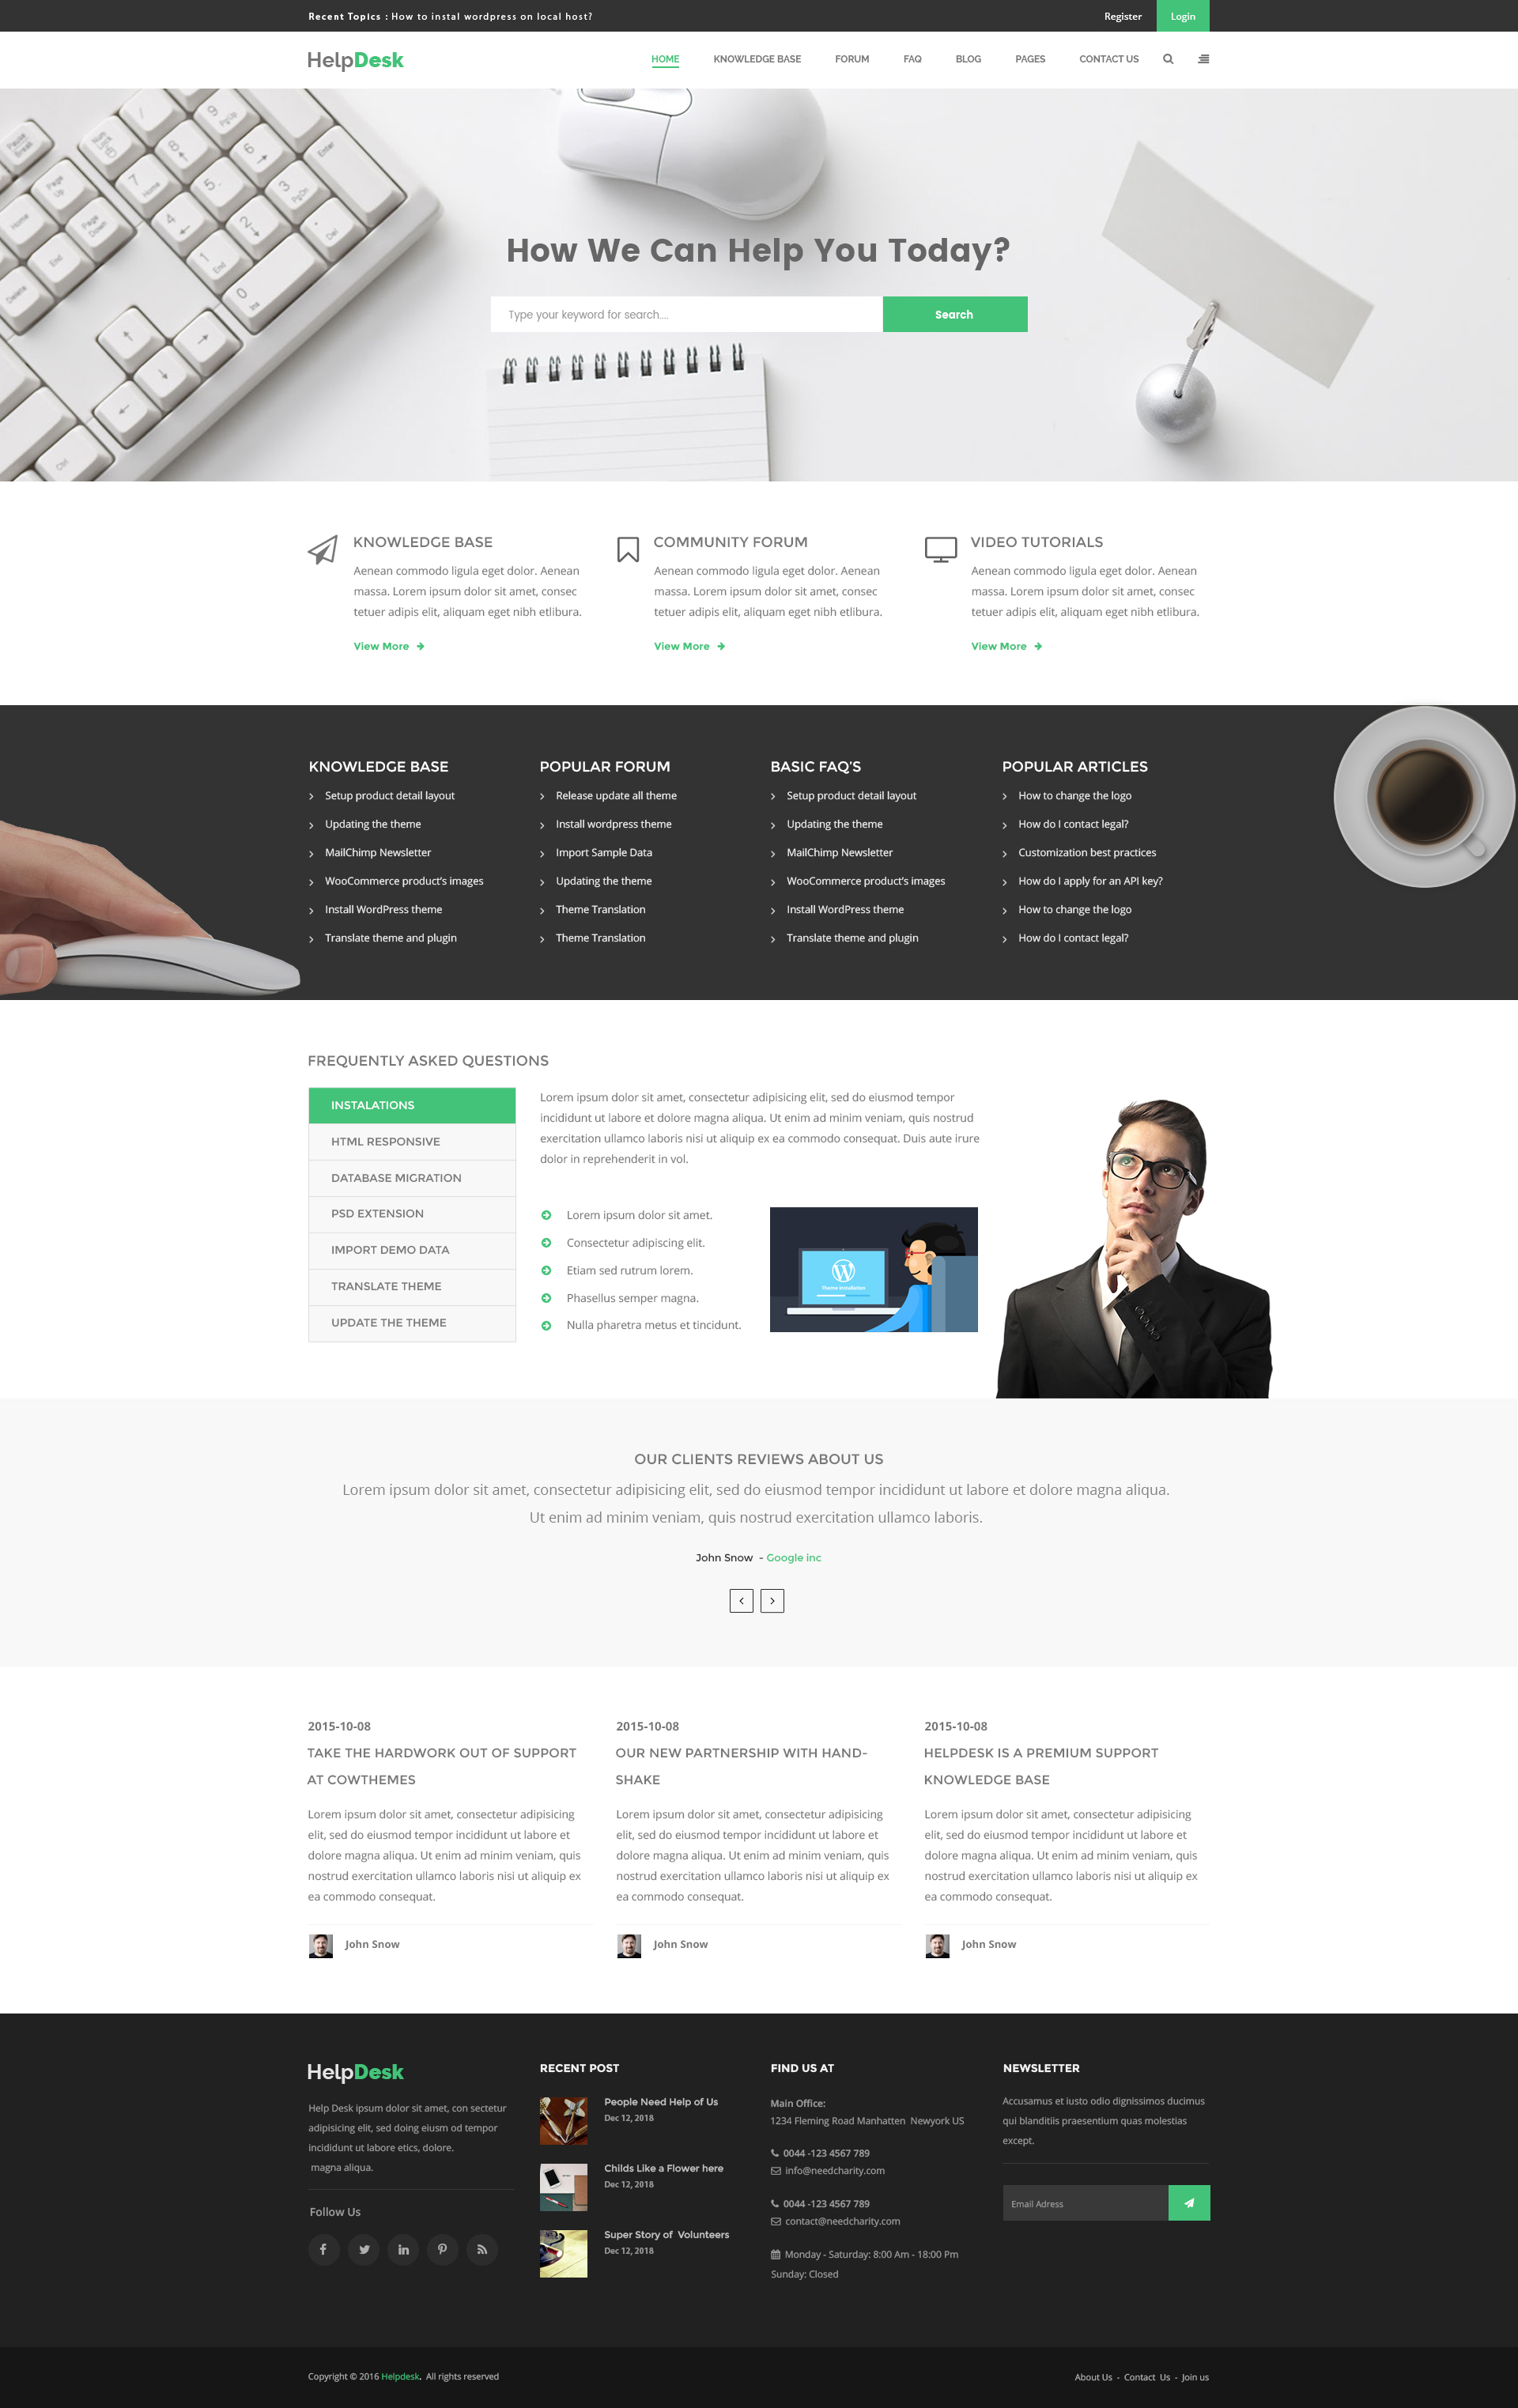 helpdesk knowledge base wiki faq html template by